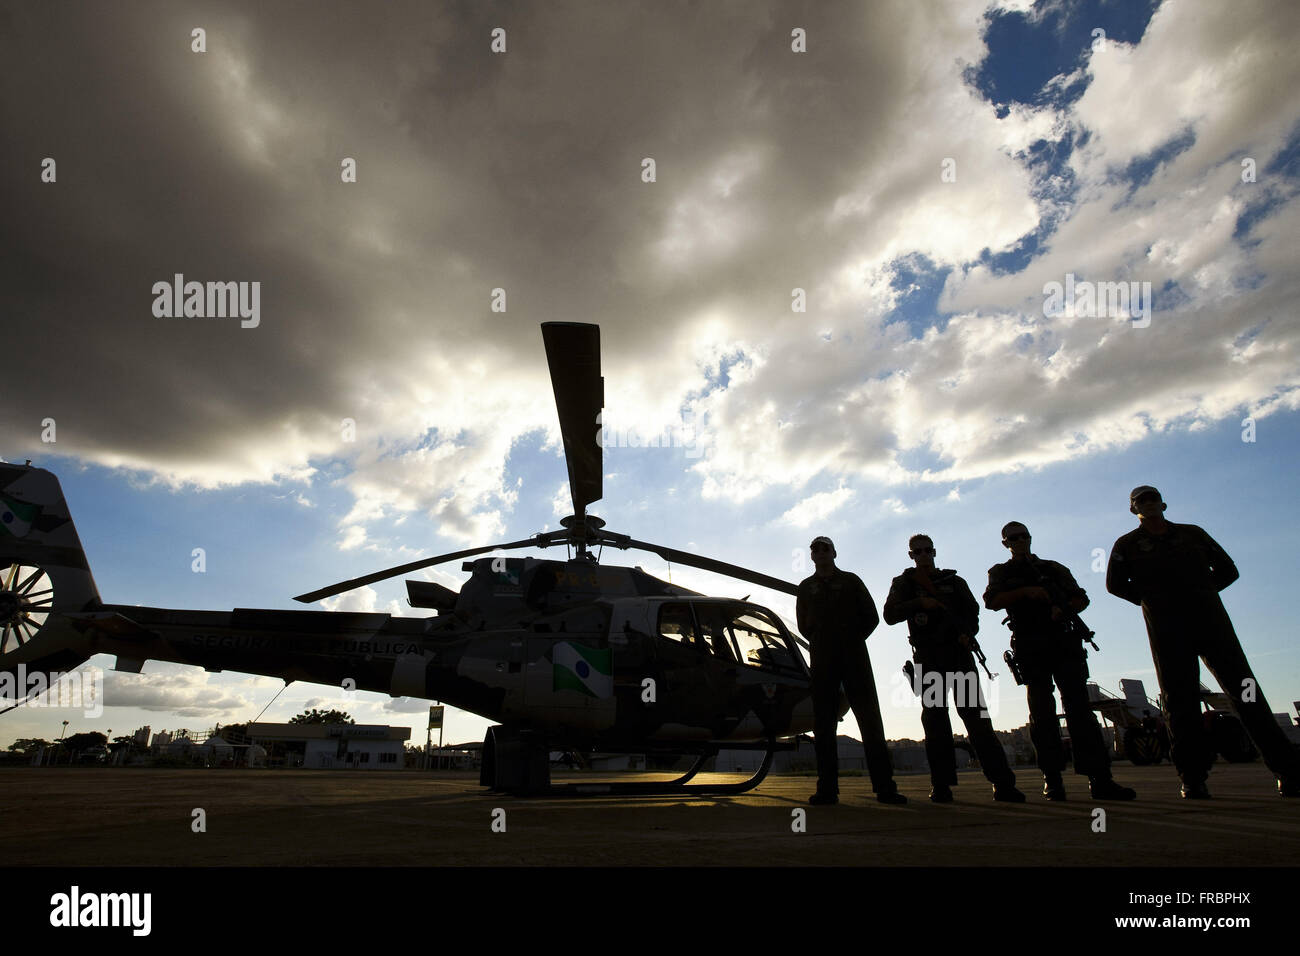 Military of GRAER - Grouping Aeropolicial Aereo and Rescue Military Police of Parana Stock Photo